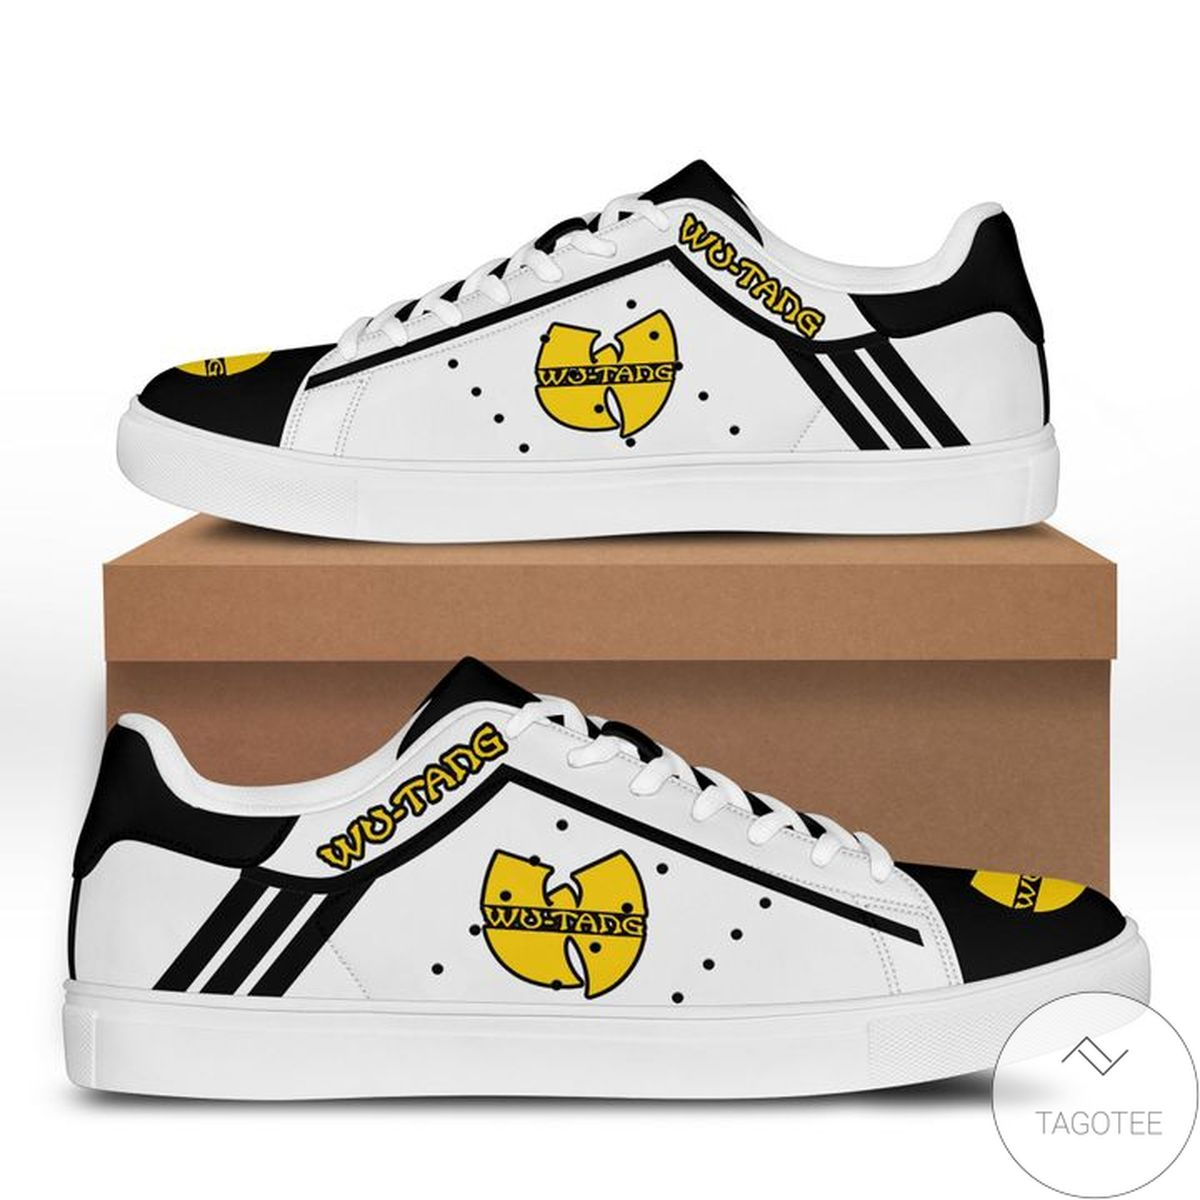 Funny Tee Wu-tang Black Stan Smith Shoes